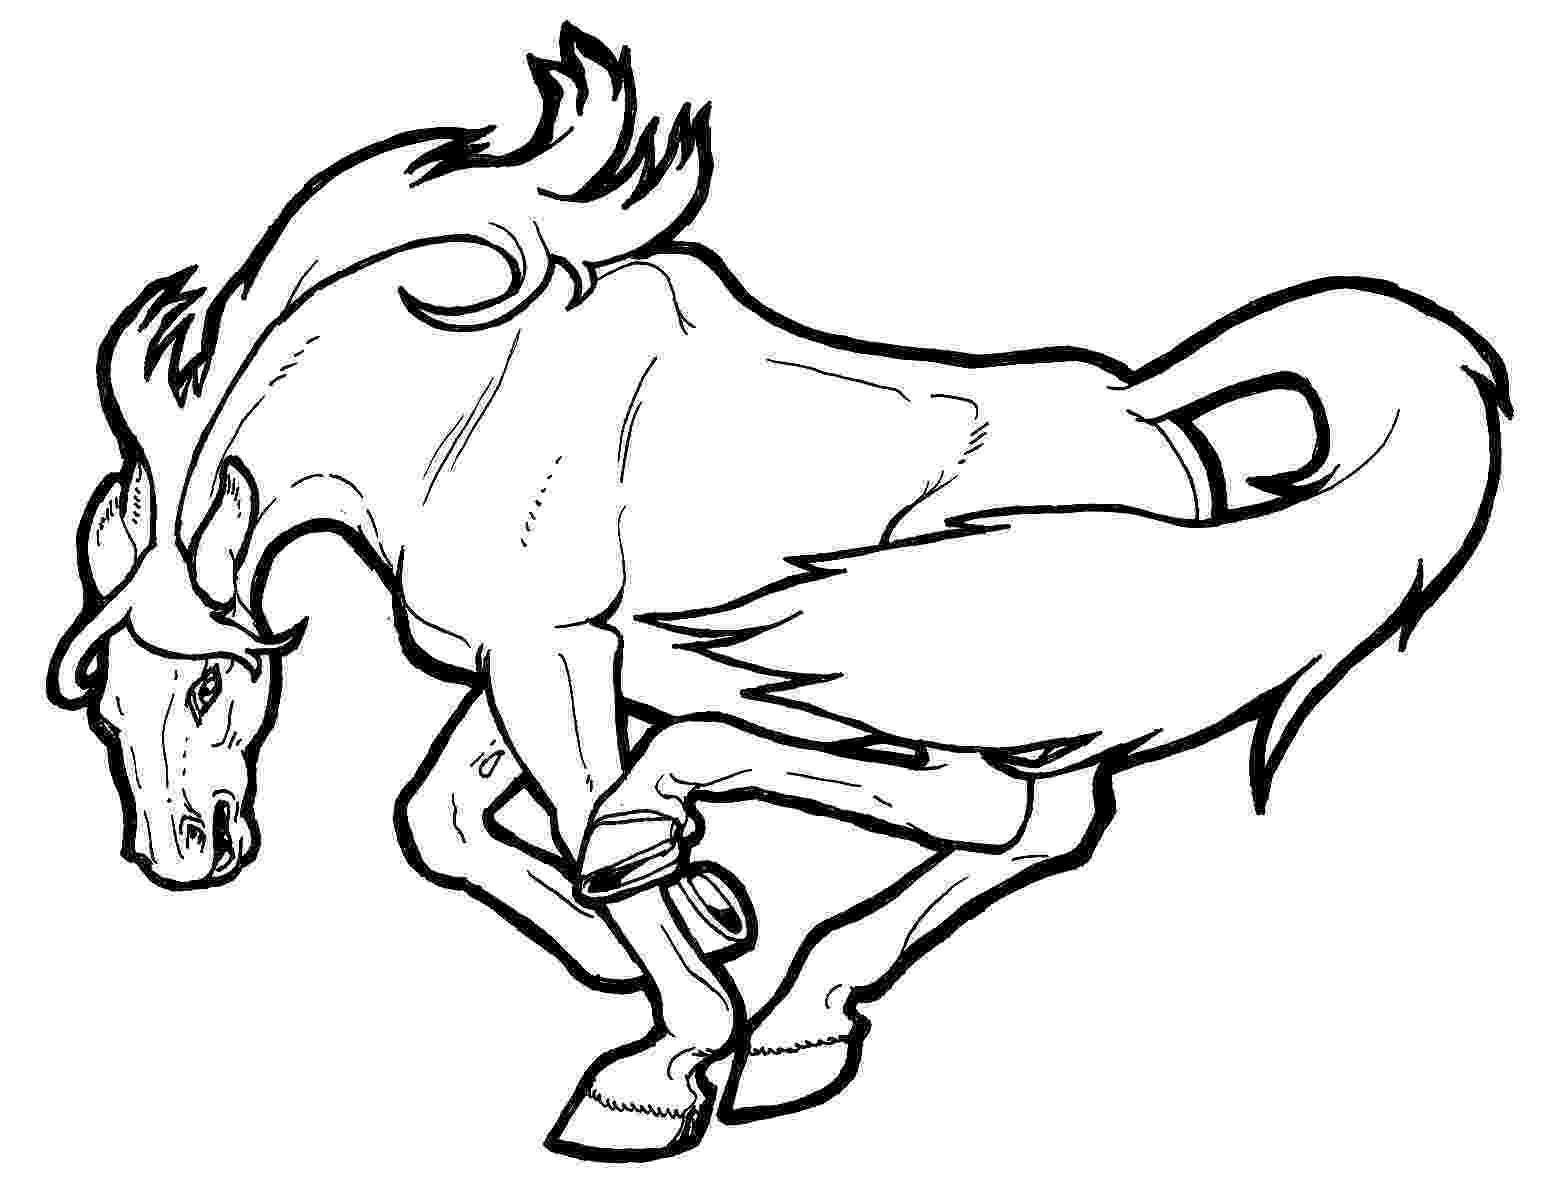 coloring horse pages 30 best horse coloring pages ideas we need fun horse coloring pages